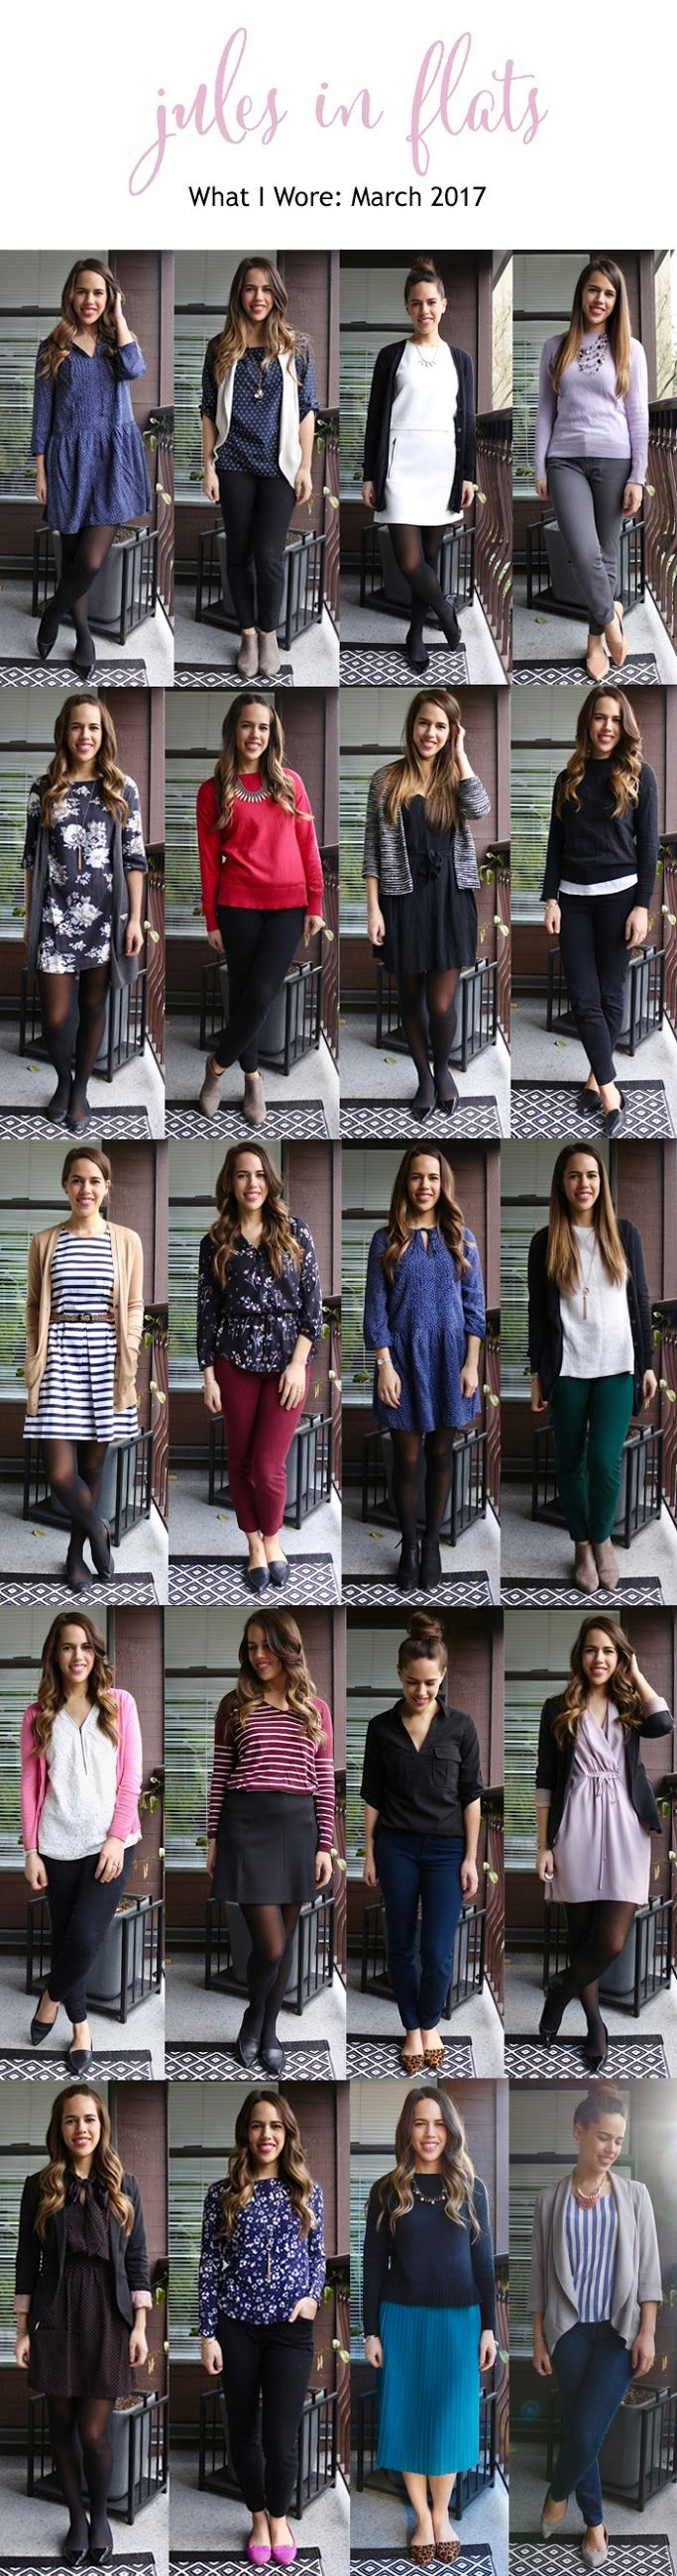 Jules in Flats Monthly Outfit Roundup March 2017